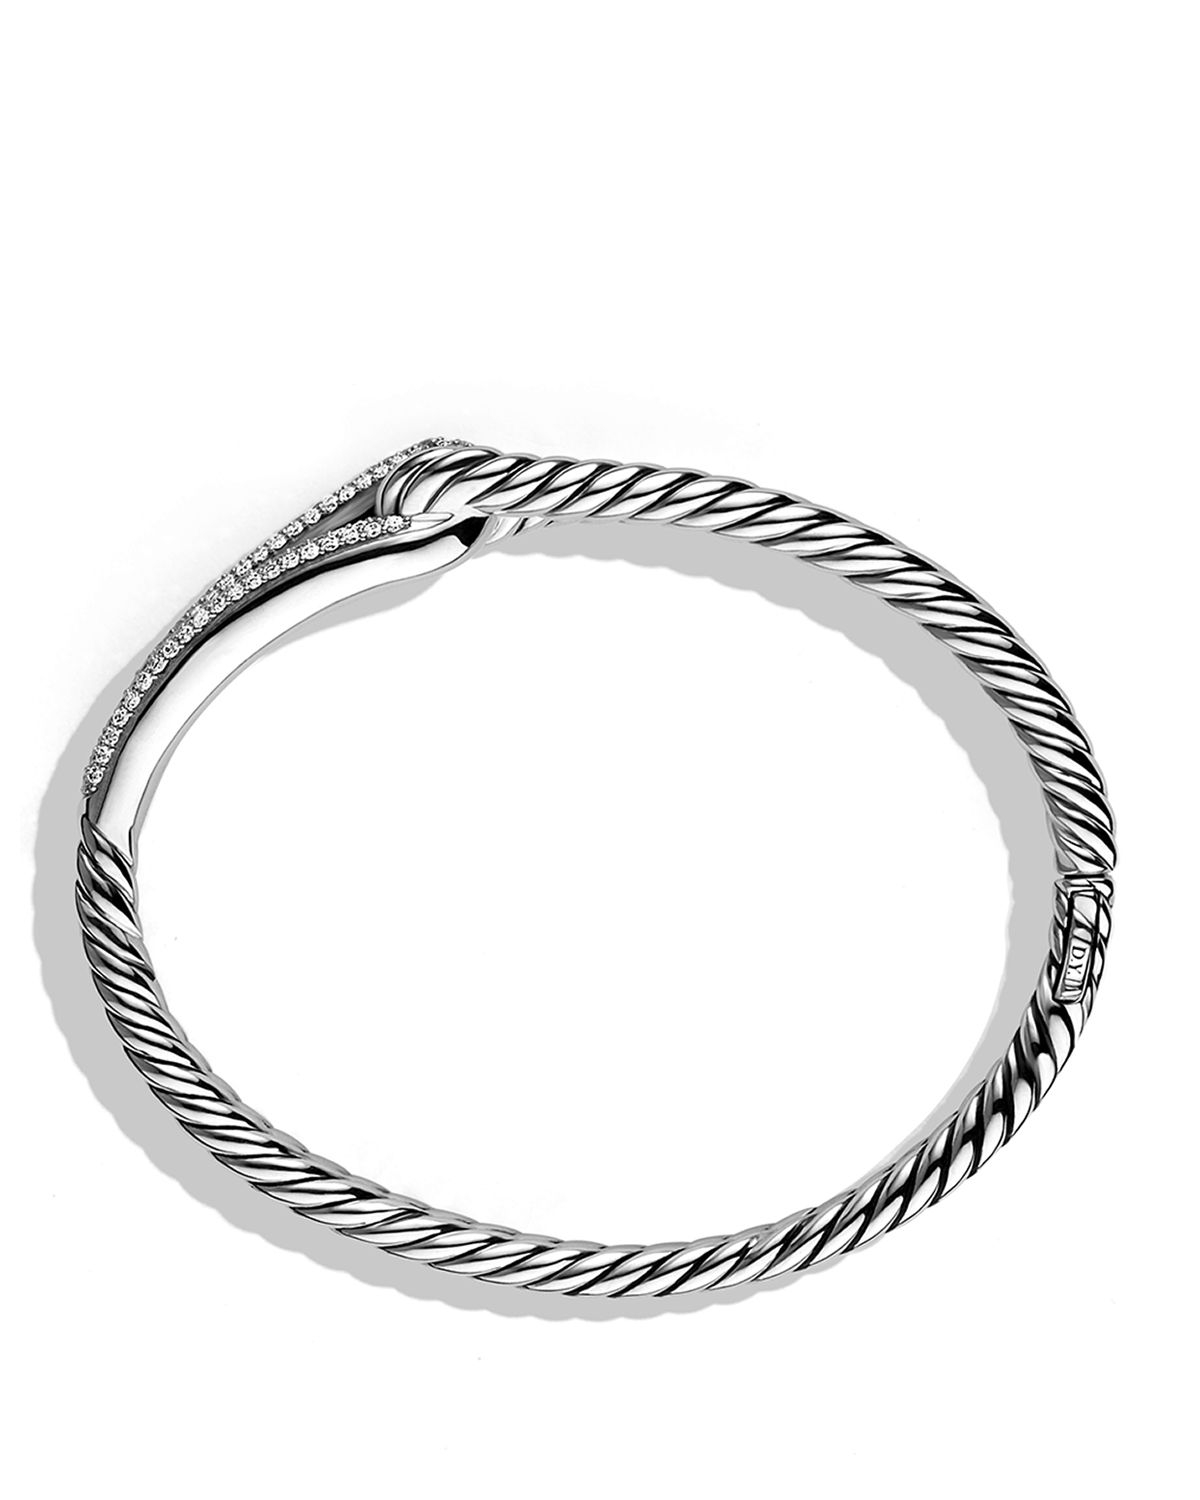 loop single women » for sale david yurman 'labyrinth' single-loop bracelet with diamonds by womens fine jewelry, shop our new women's sale in the outlet at orvis save big on chic women's tops, bottoms, shoes, and accessories we've just added to the sale.